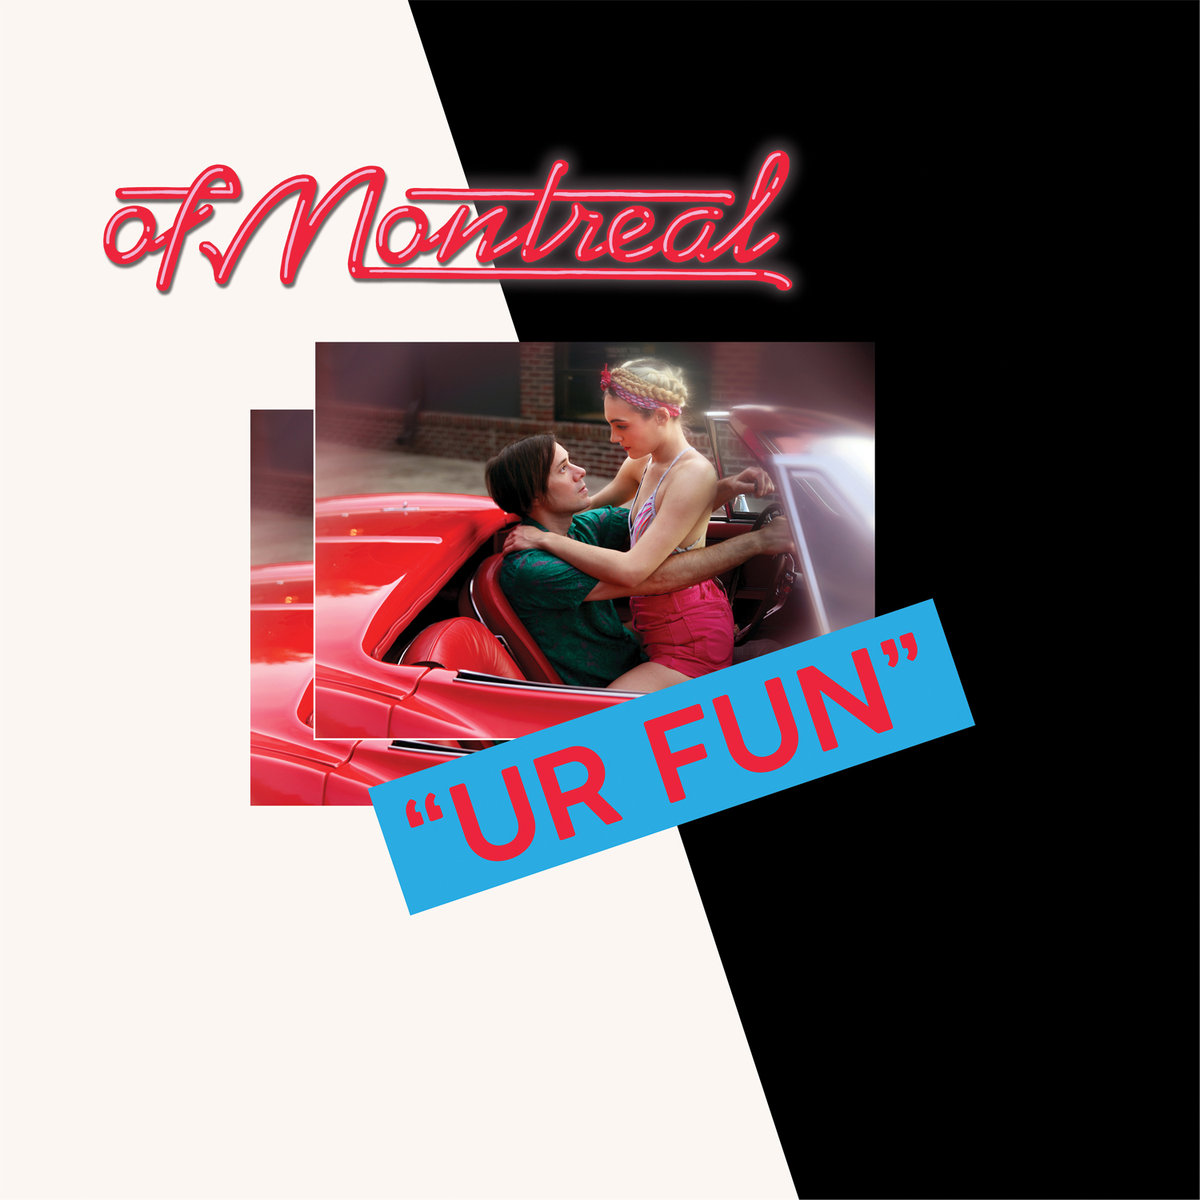 'UR FUN' by of Montreal, album review by Steve Ovida for Northern Transmissions